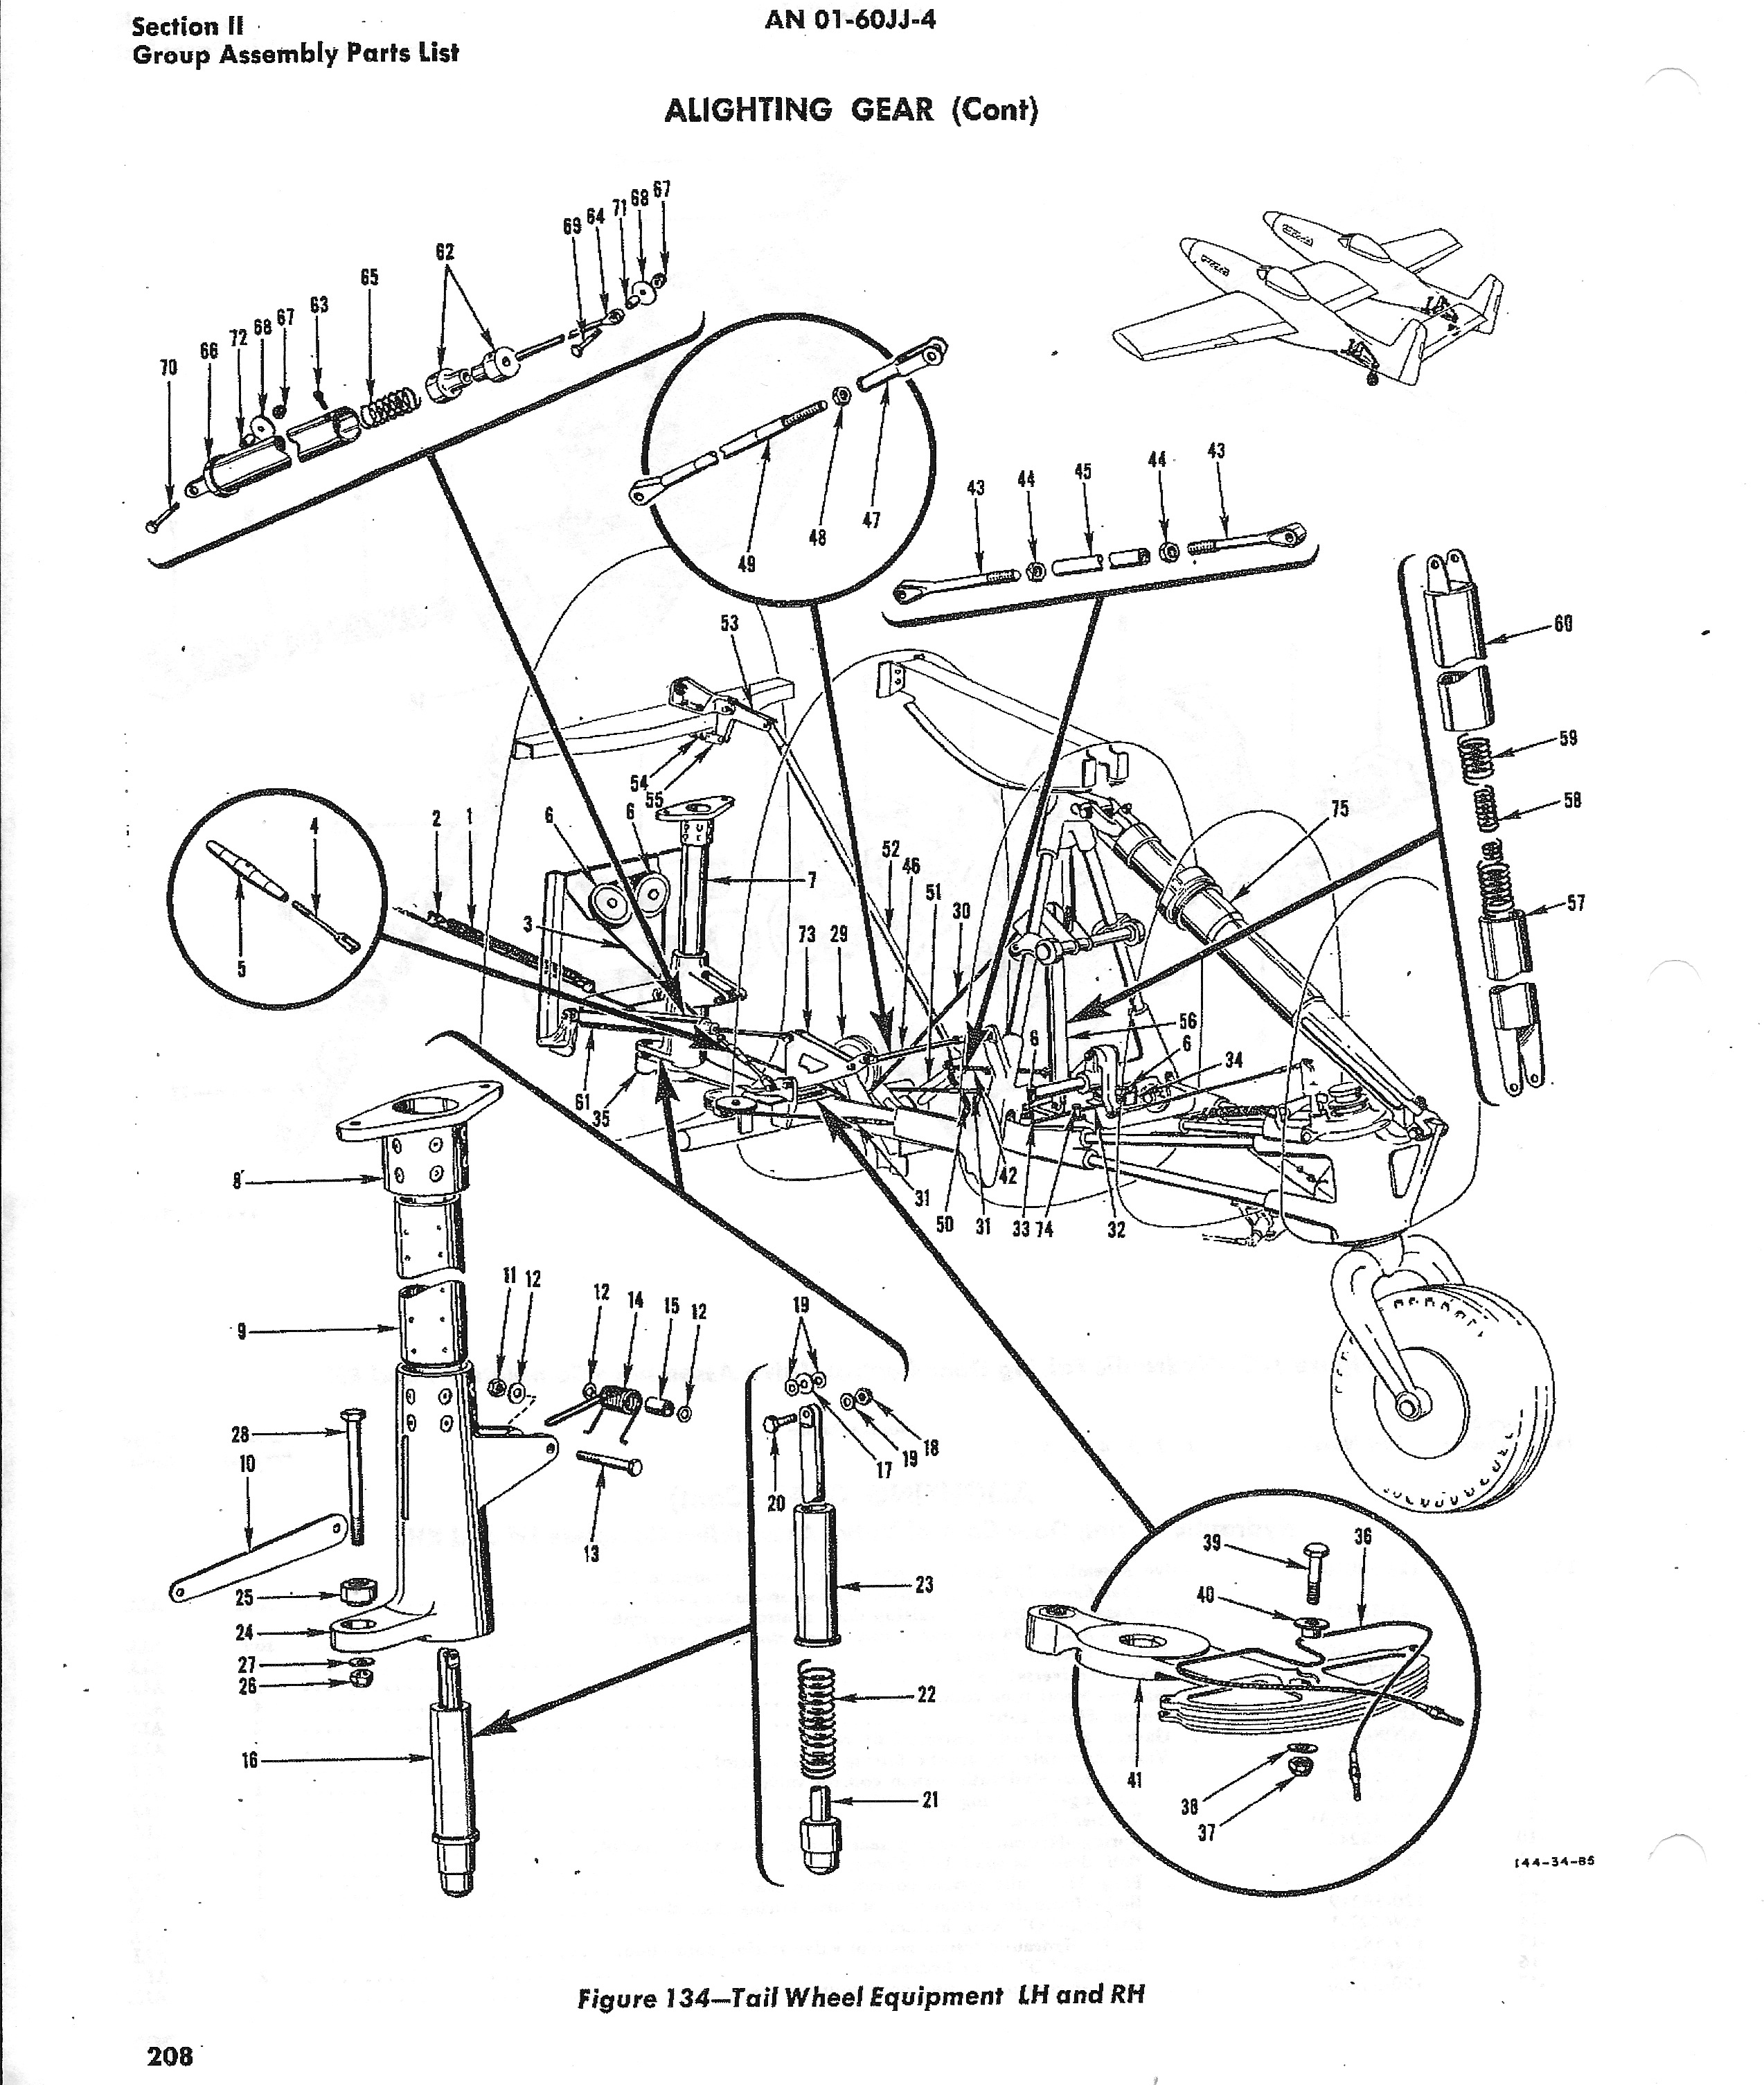 A good view from the Illustrated Parts Manual showing the tail wheel assembly. (photo via Tom Reilly)